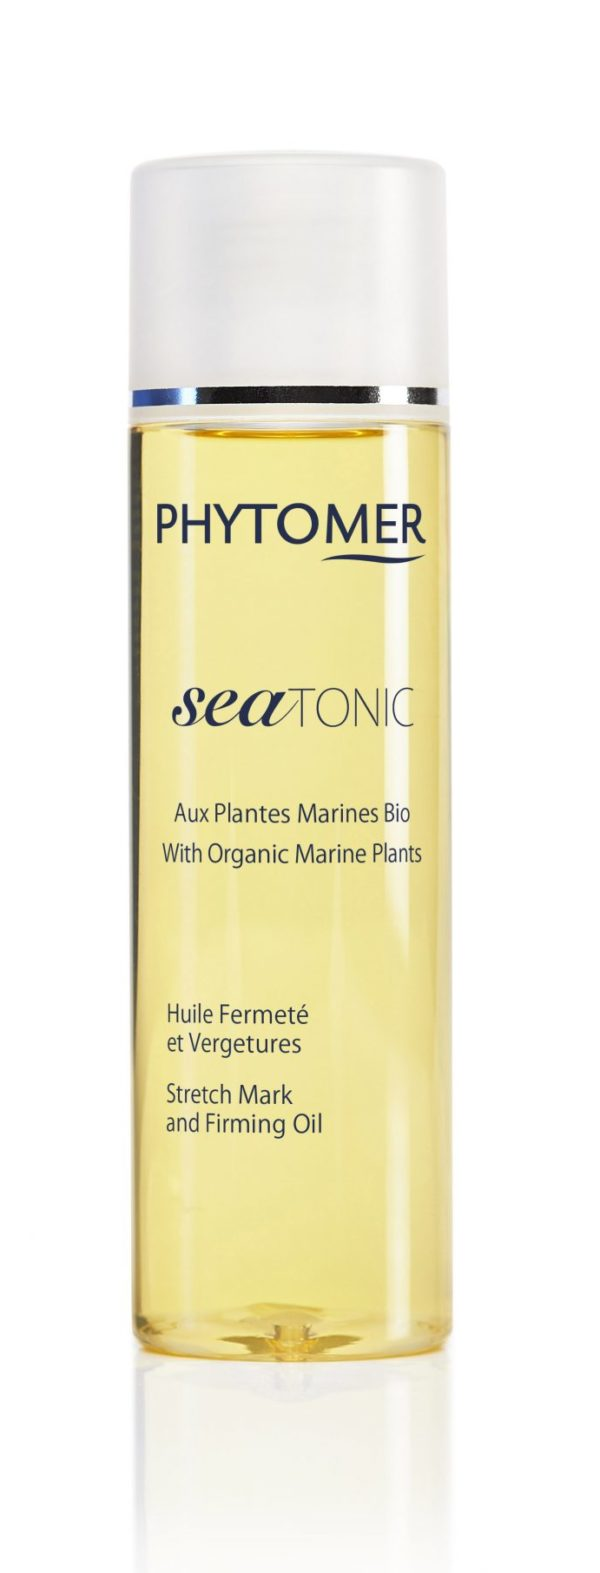 PhytomerSEATONIC_STRETCH_MARK_FIRMING_OIL